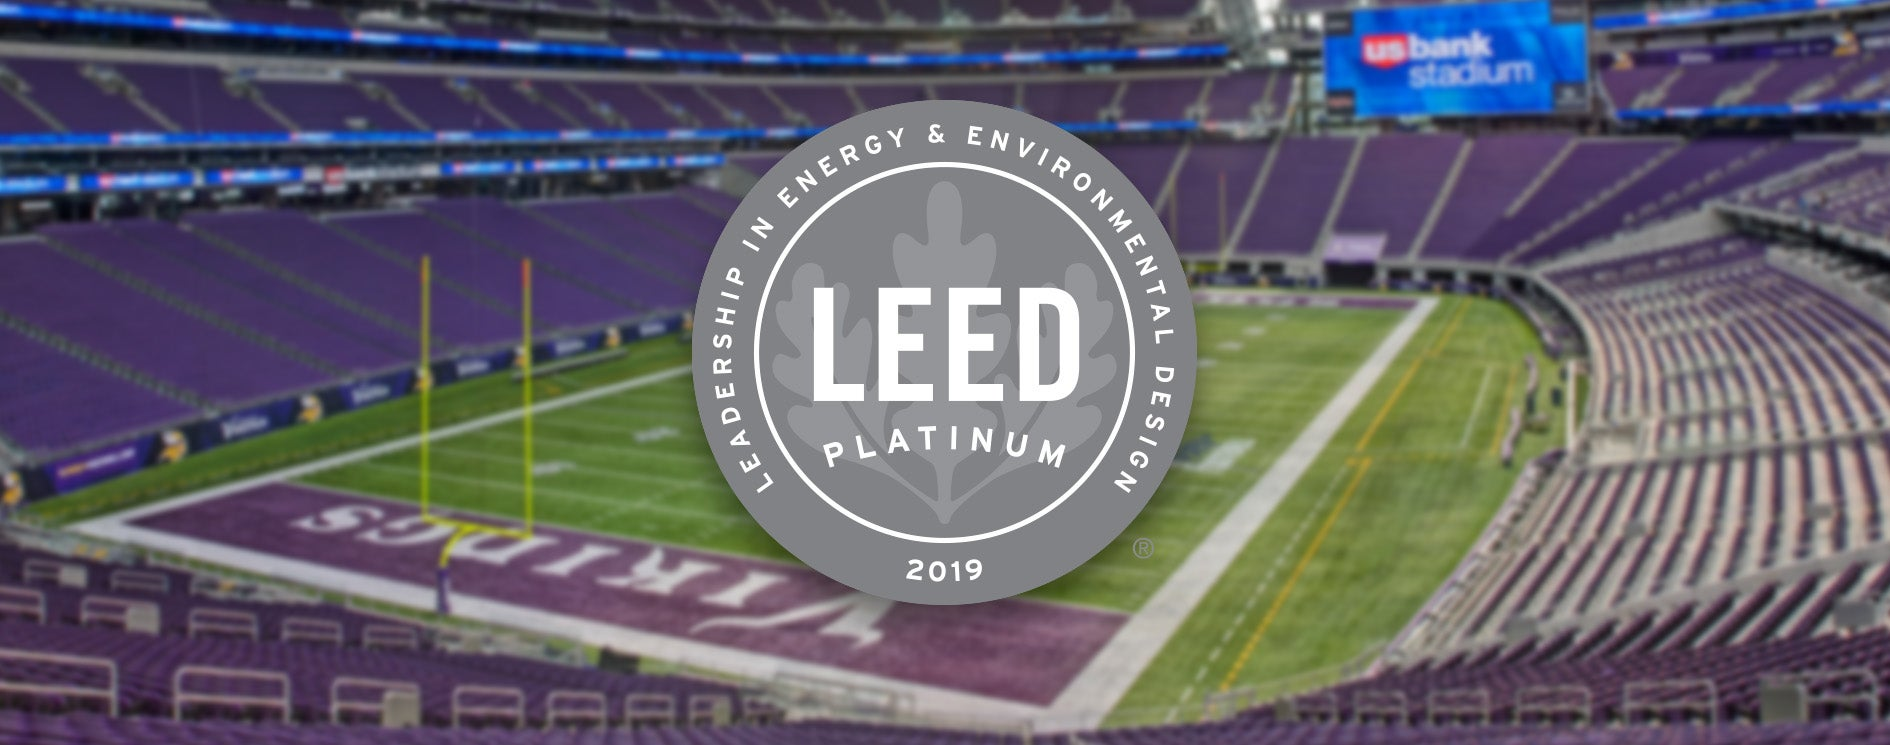 U.S. Bank Stadium Becomes the First Professional Sports Stadium to Earn LEED Platinum Using the Arc Performance Platform